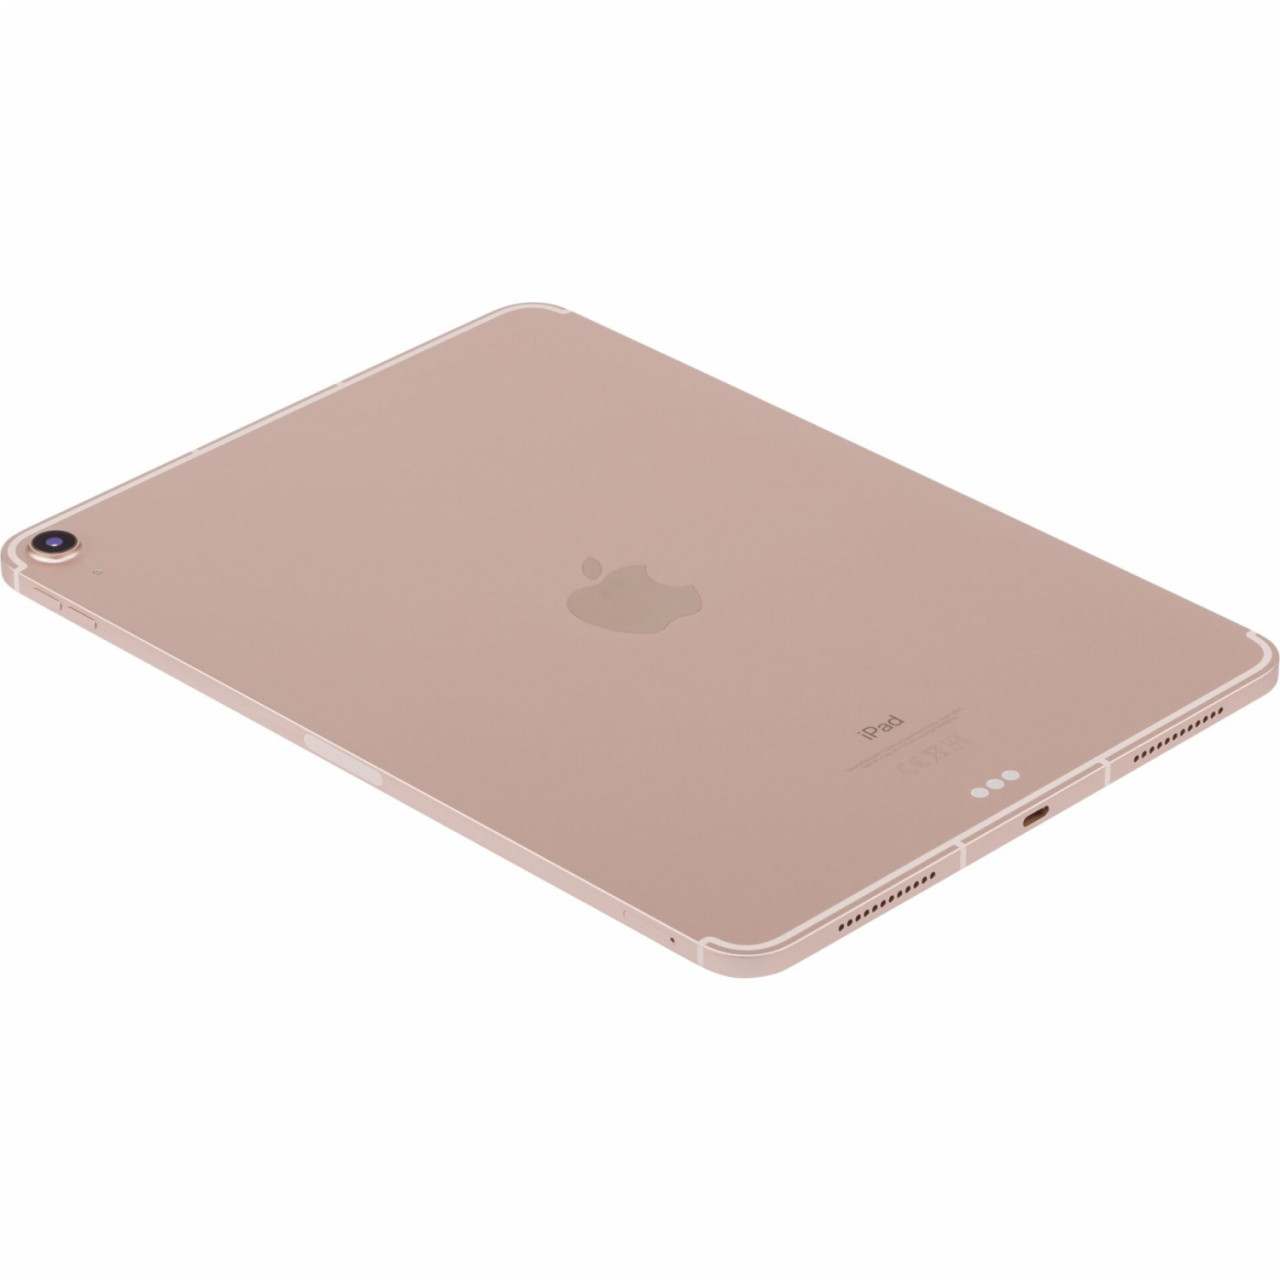 Apple iPad Air 10.9 Wi-Fi Cell 64GB Rose Gold MYGY2FD/A